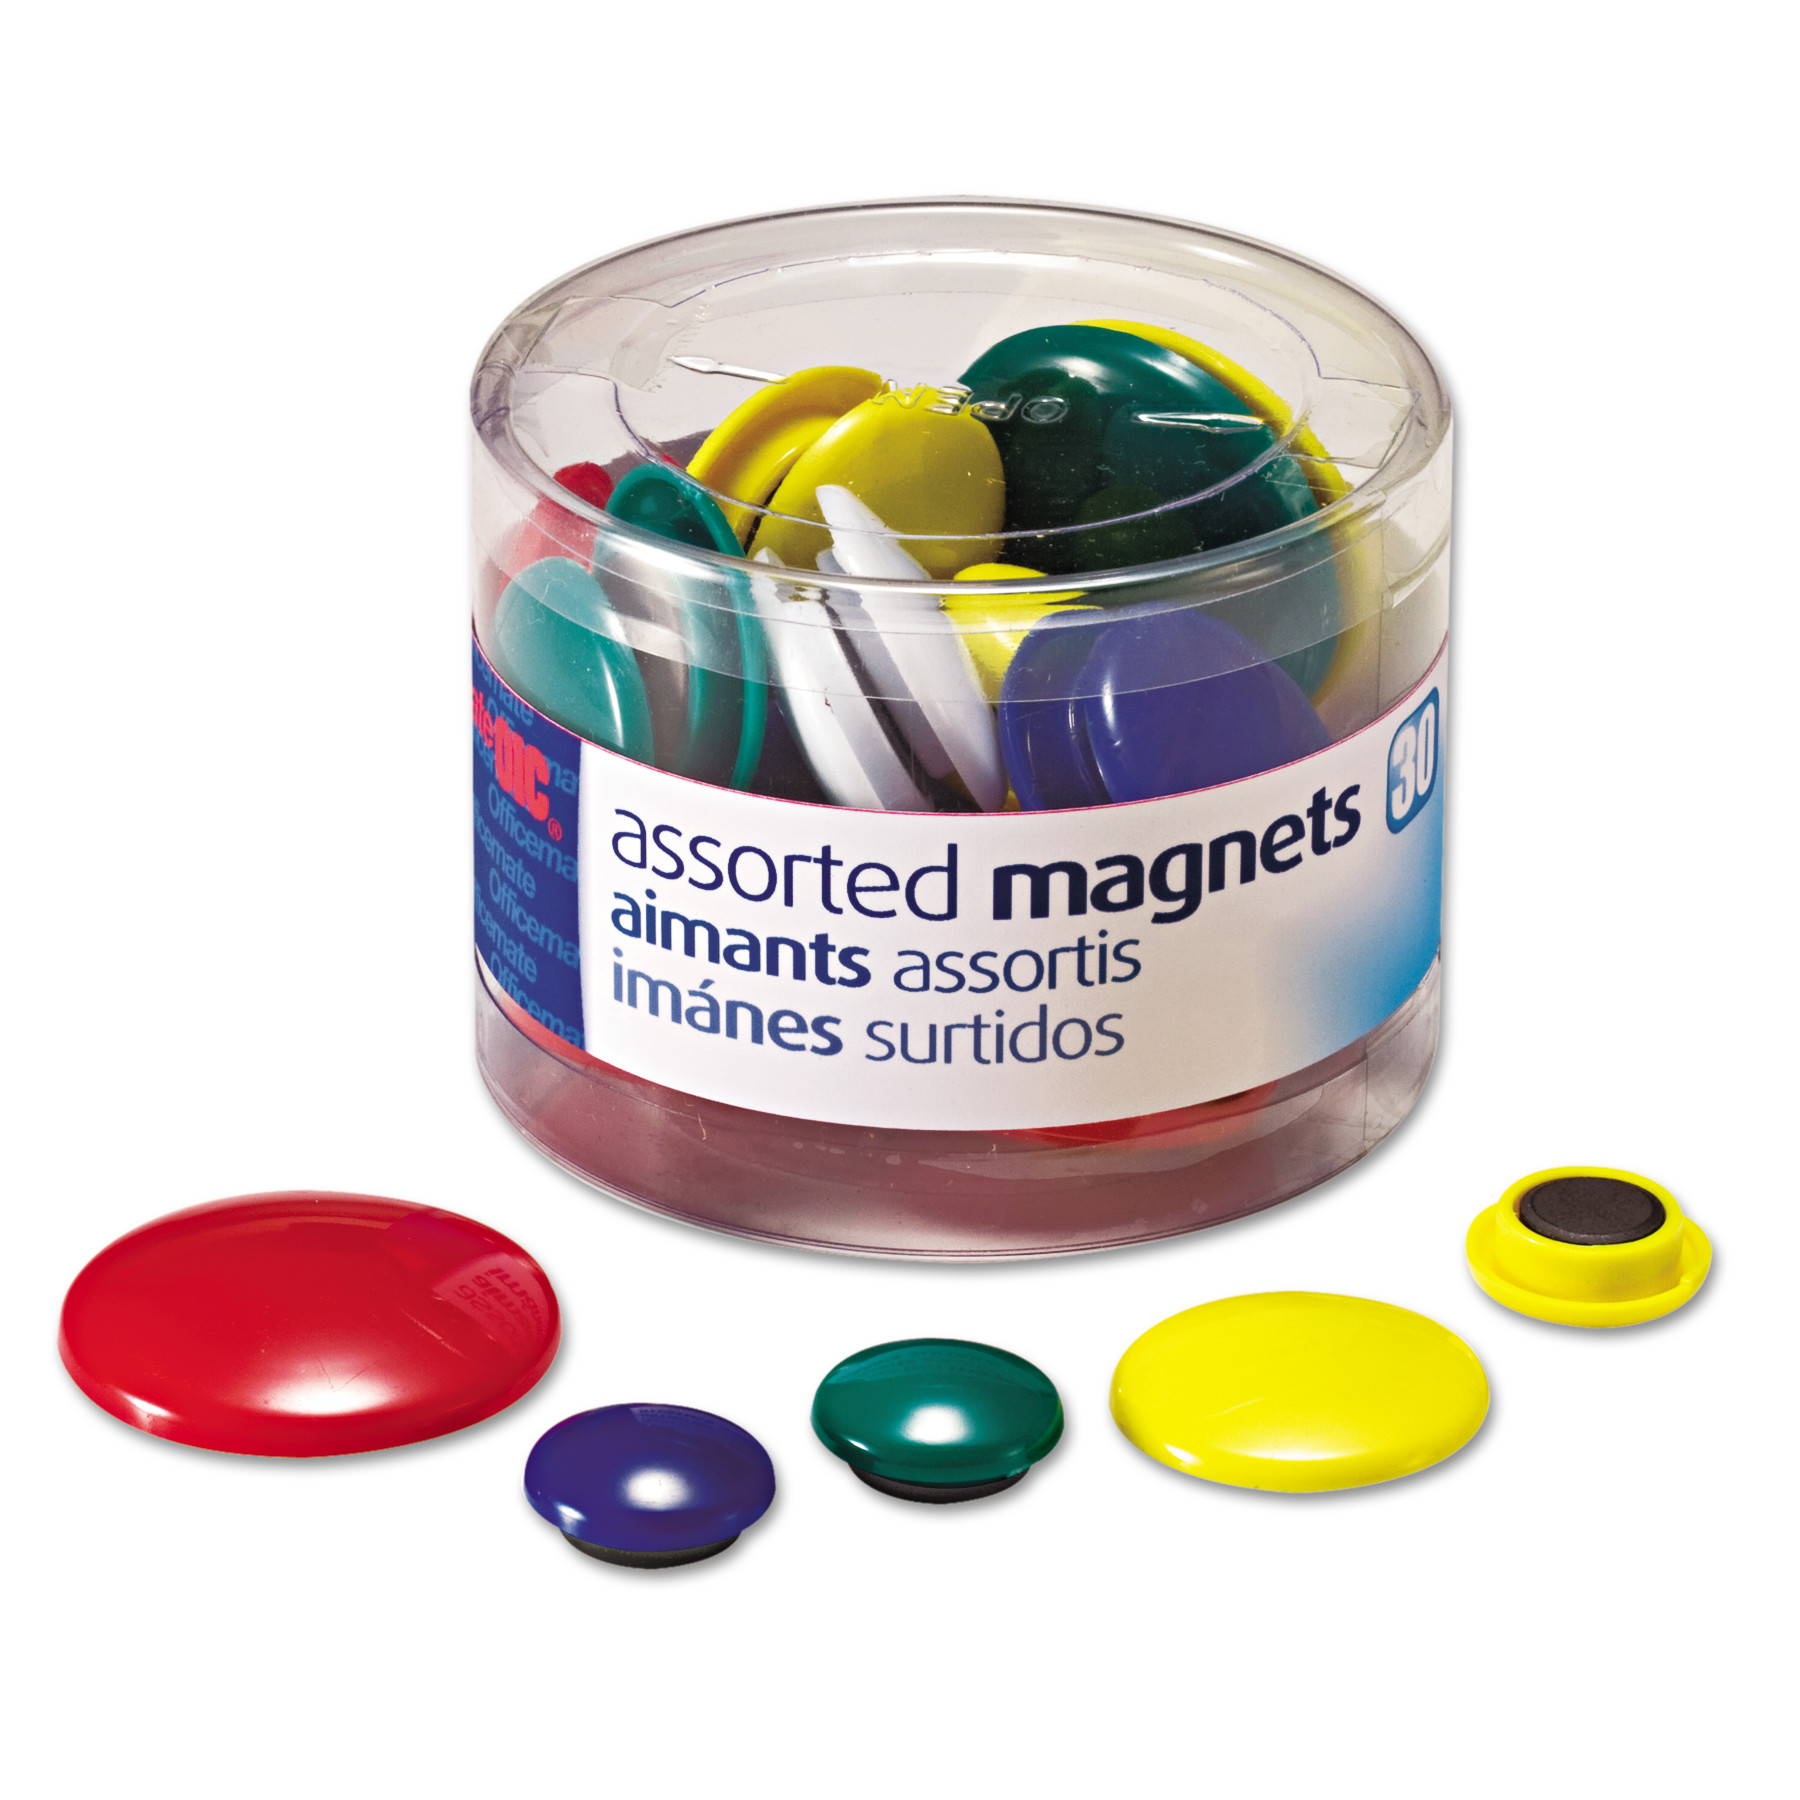 Officemate Assorted Magnets, Circles, Assorted Sizes & Colors, 30-Count